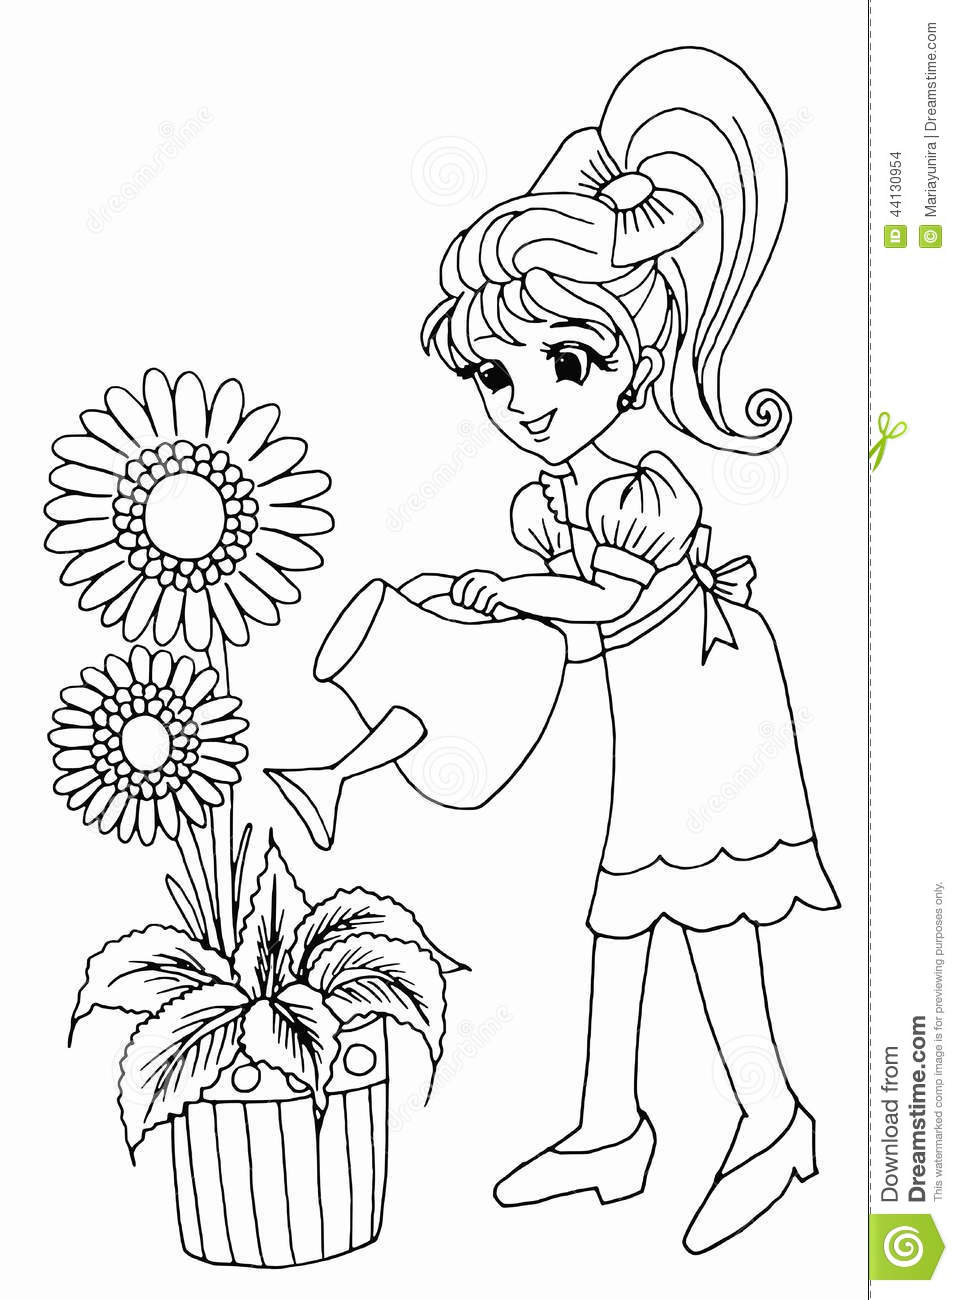 Time Garden Coloring Book Review Colouring Gardening Stock Illustration Image